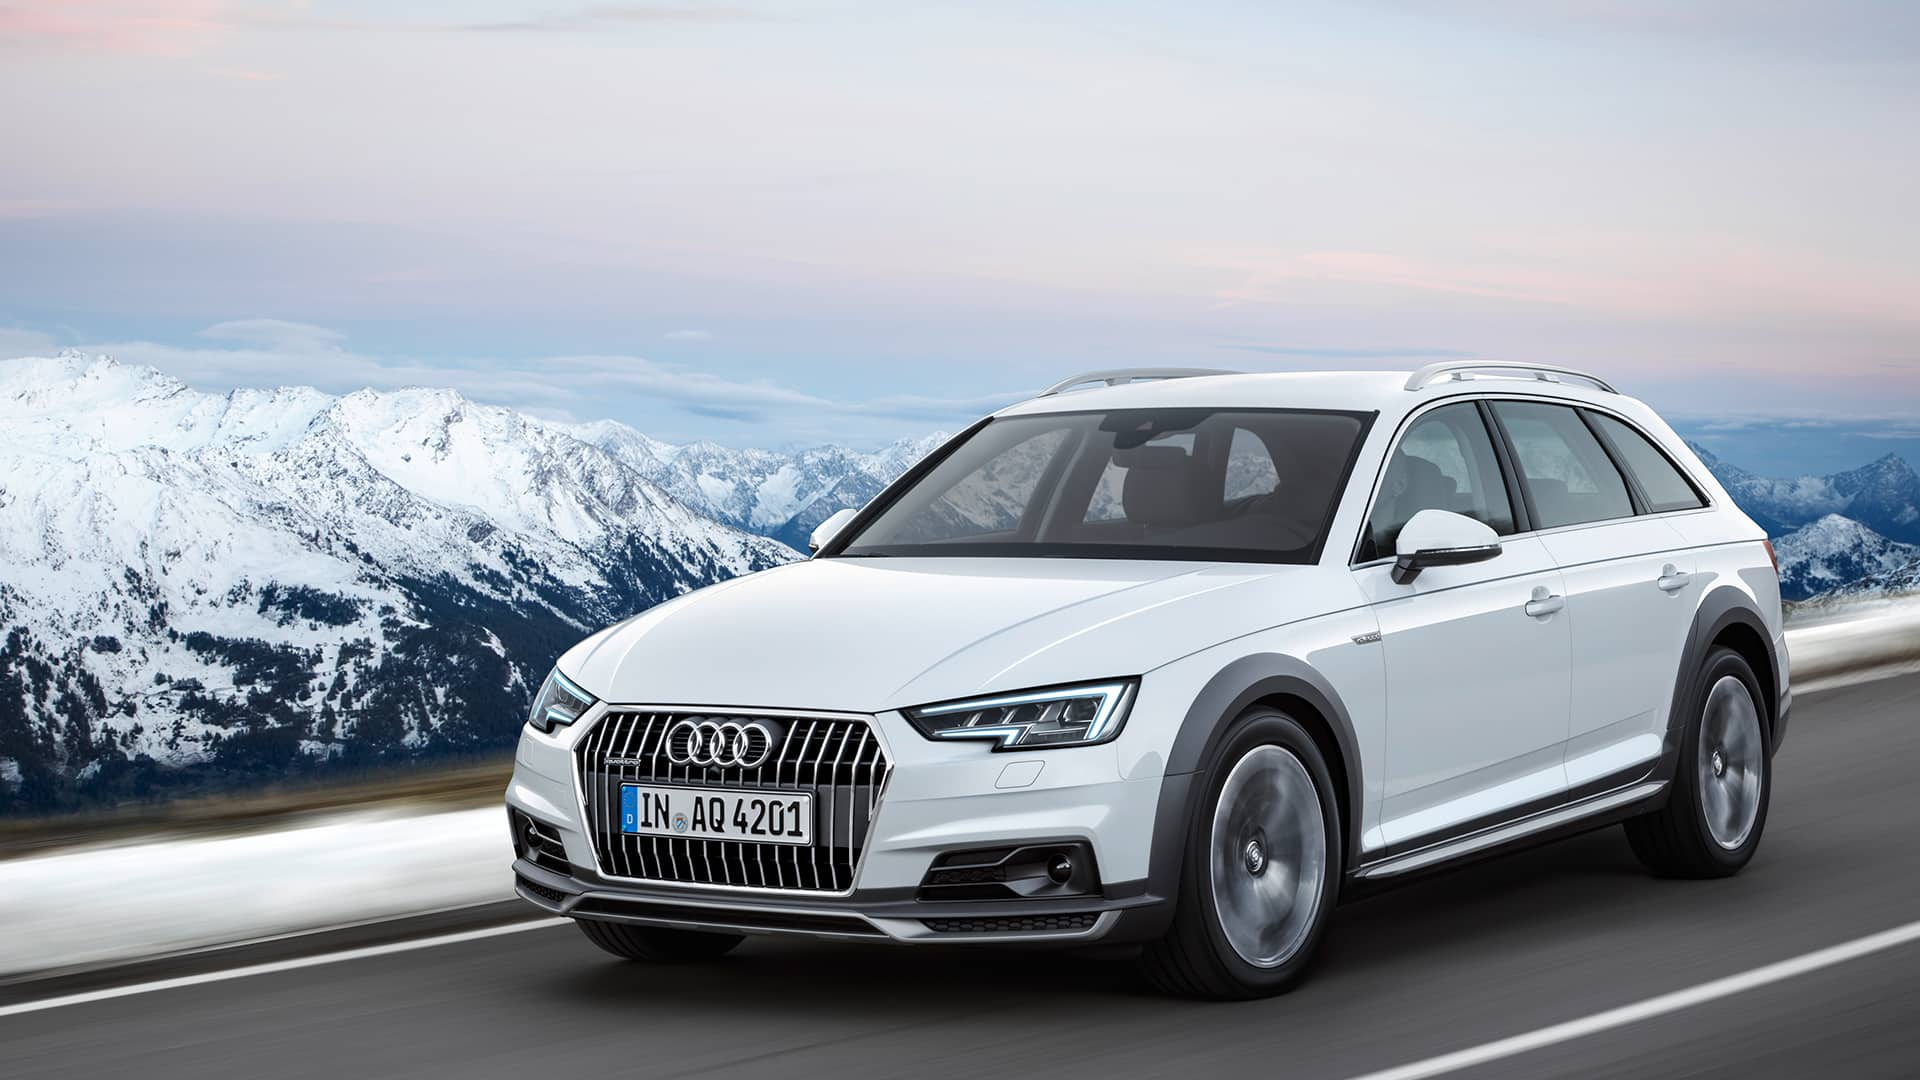 hight resolution of the a4 allroad quattro